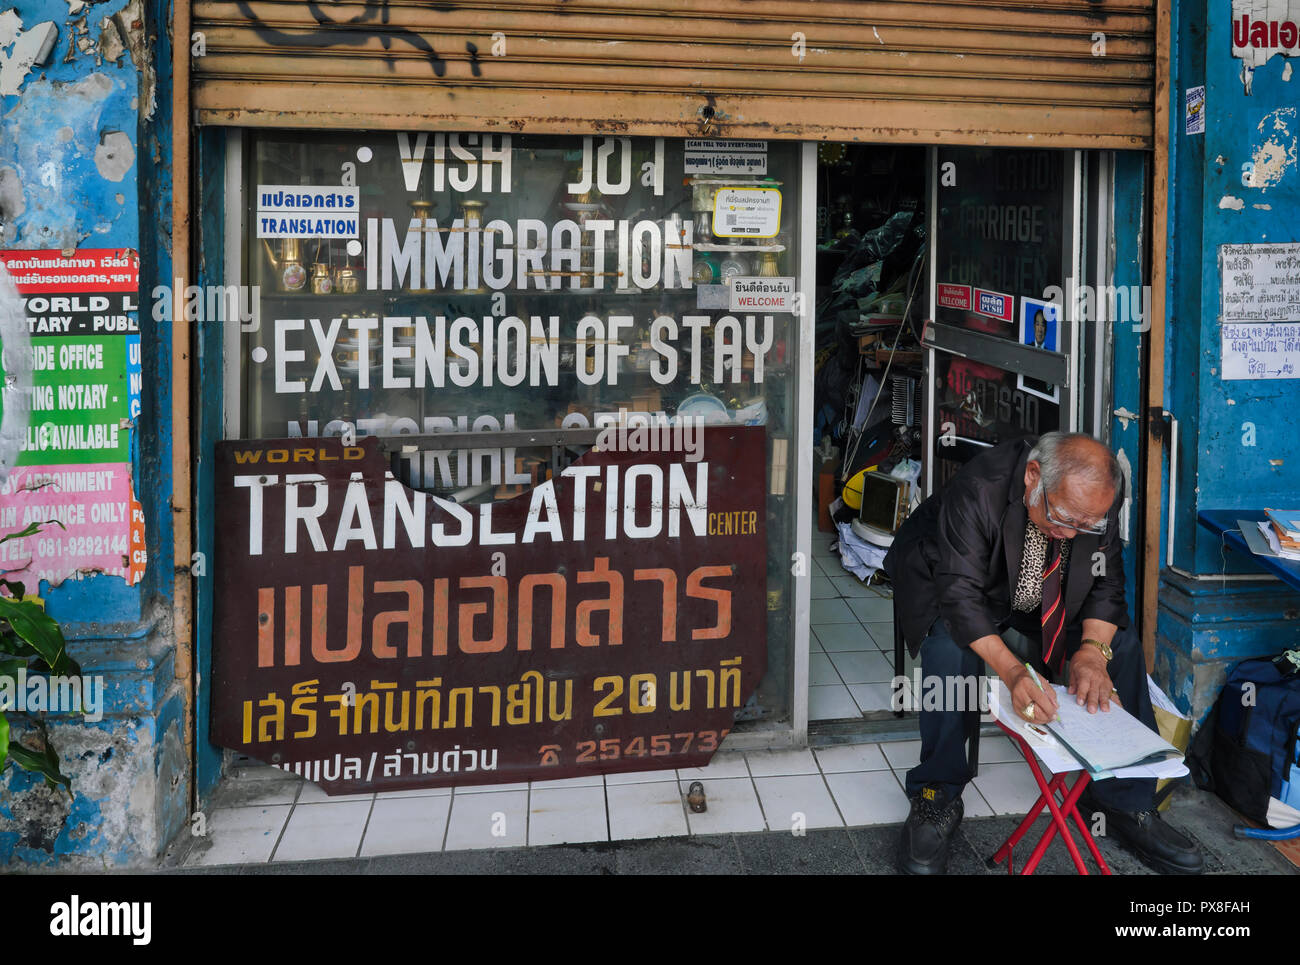 An office offering visa and translation services, in the office area and banking district of Silom Rd., near Patpong, Bangkok, Thailand - Stock Image